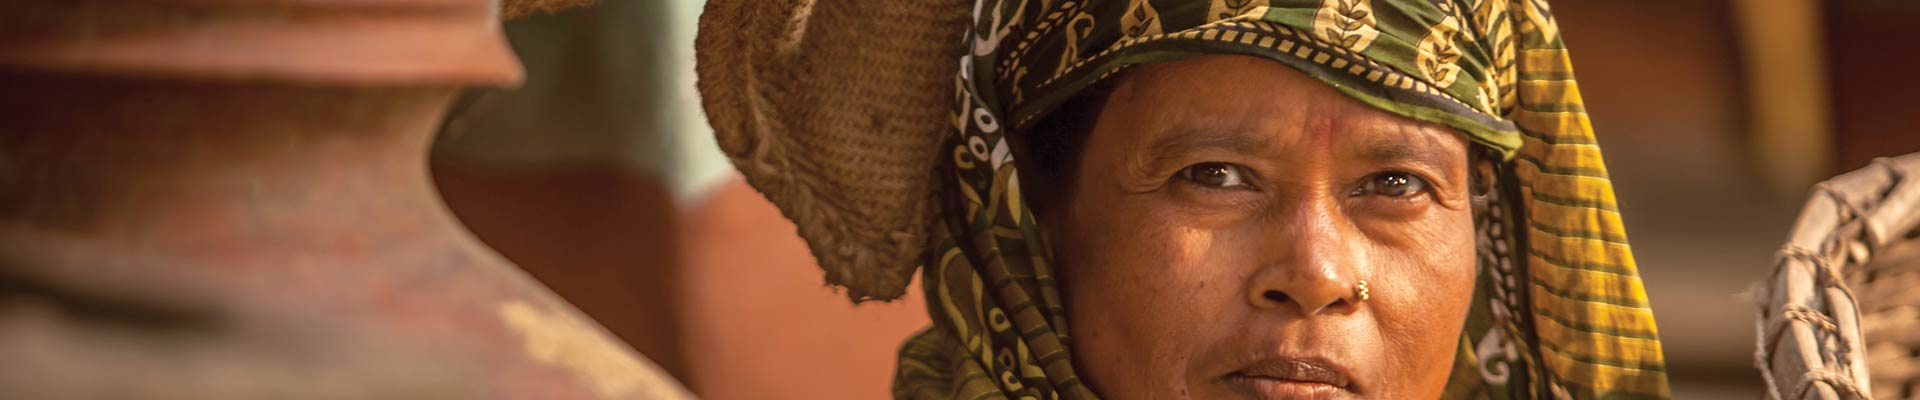 face of tribal woman